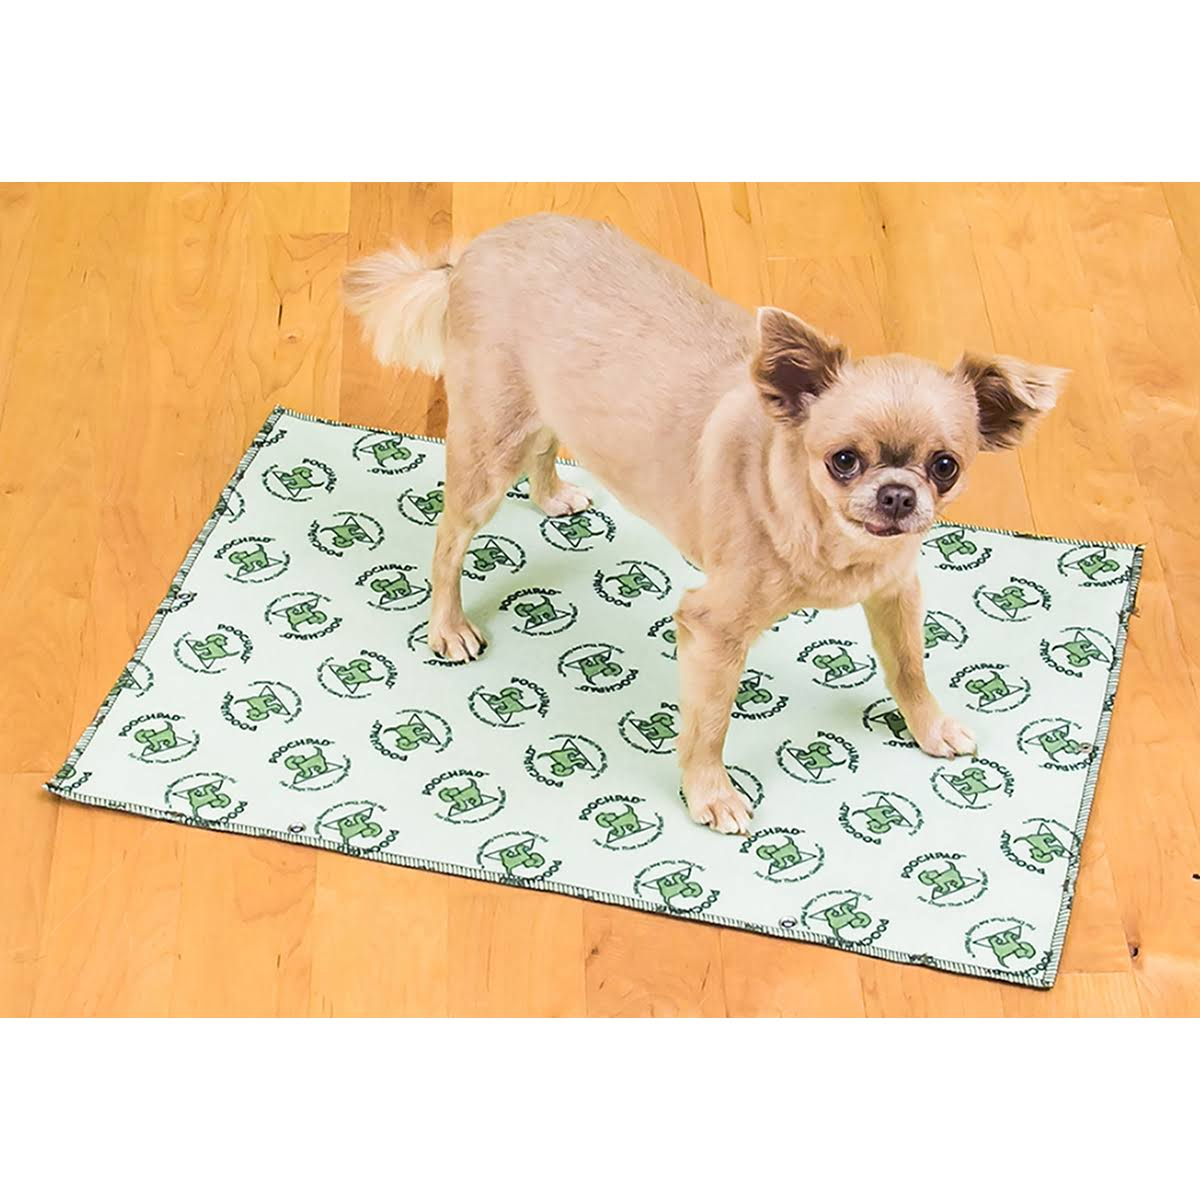 "PoochPad - Indoor Turf Dog Potty Replacement Pad 2 Pack 16""x24"""